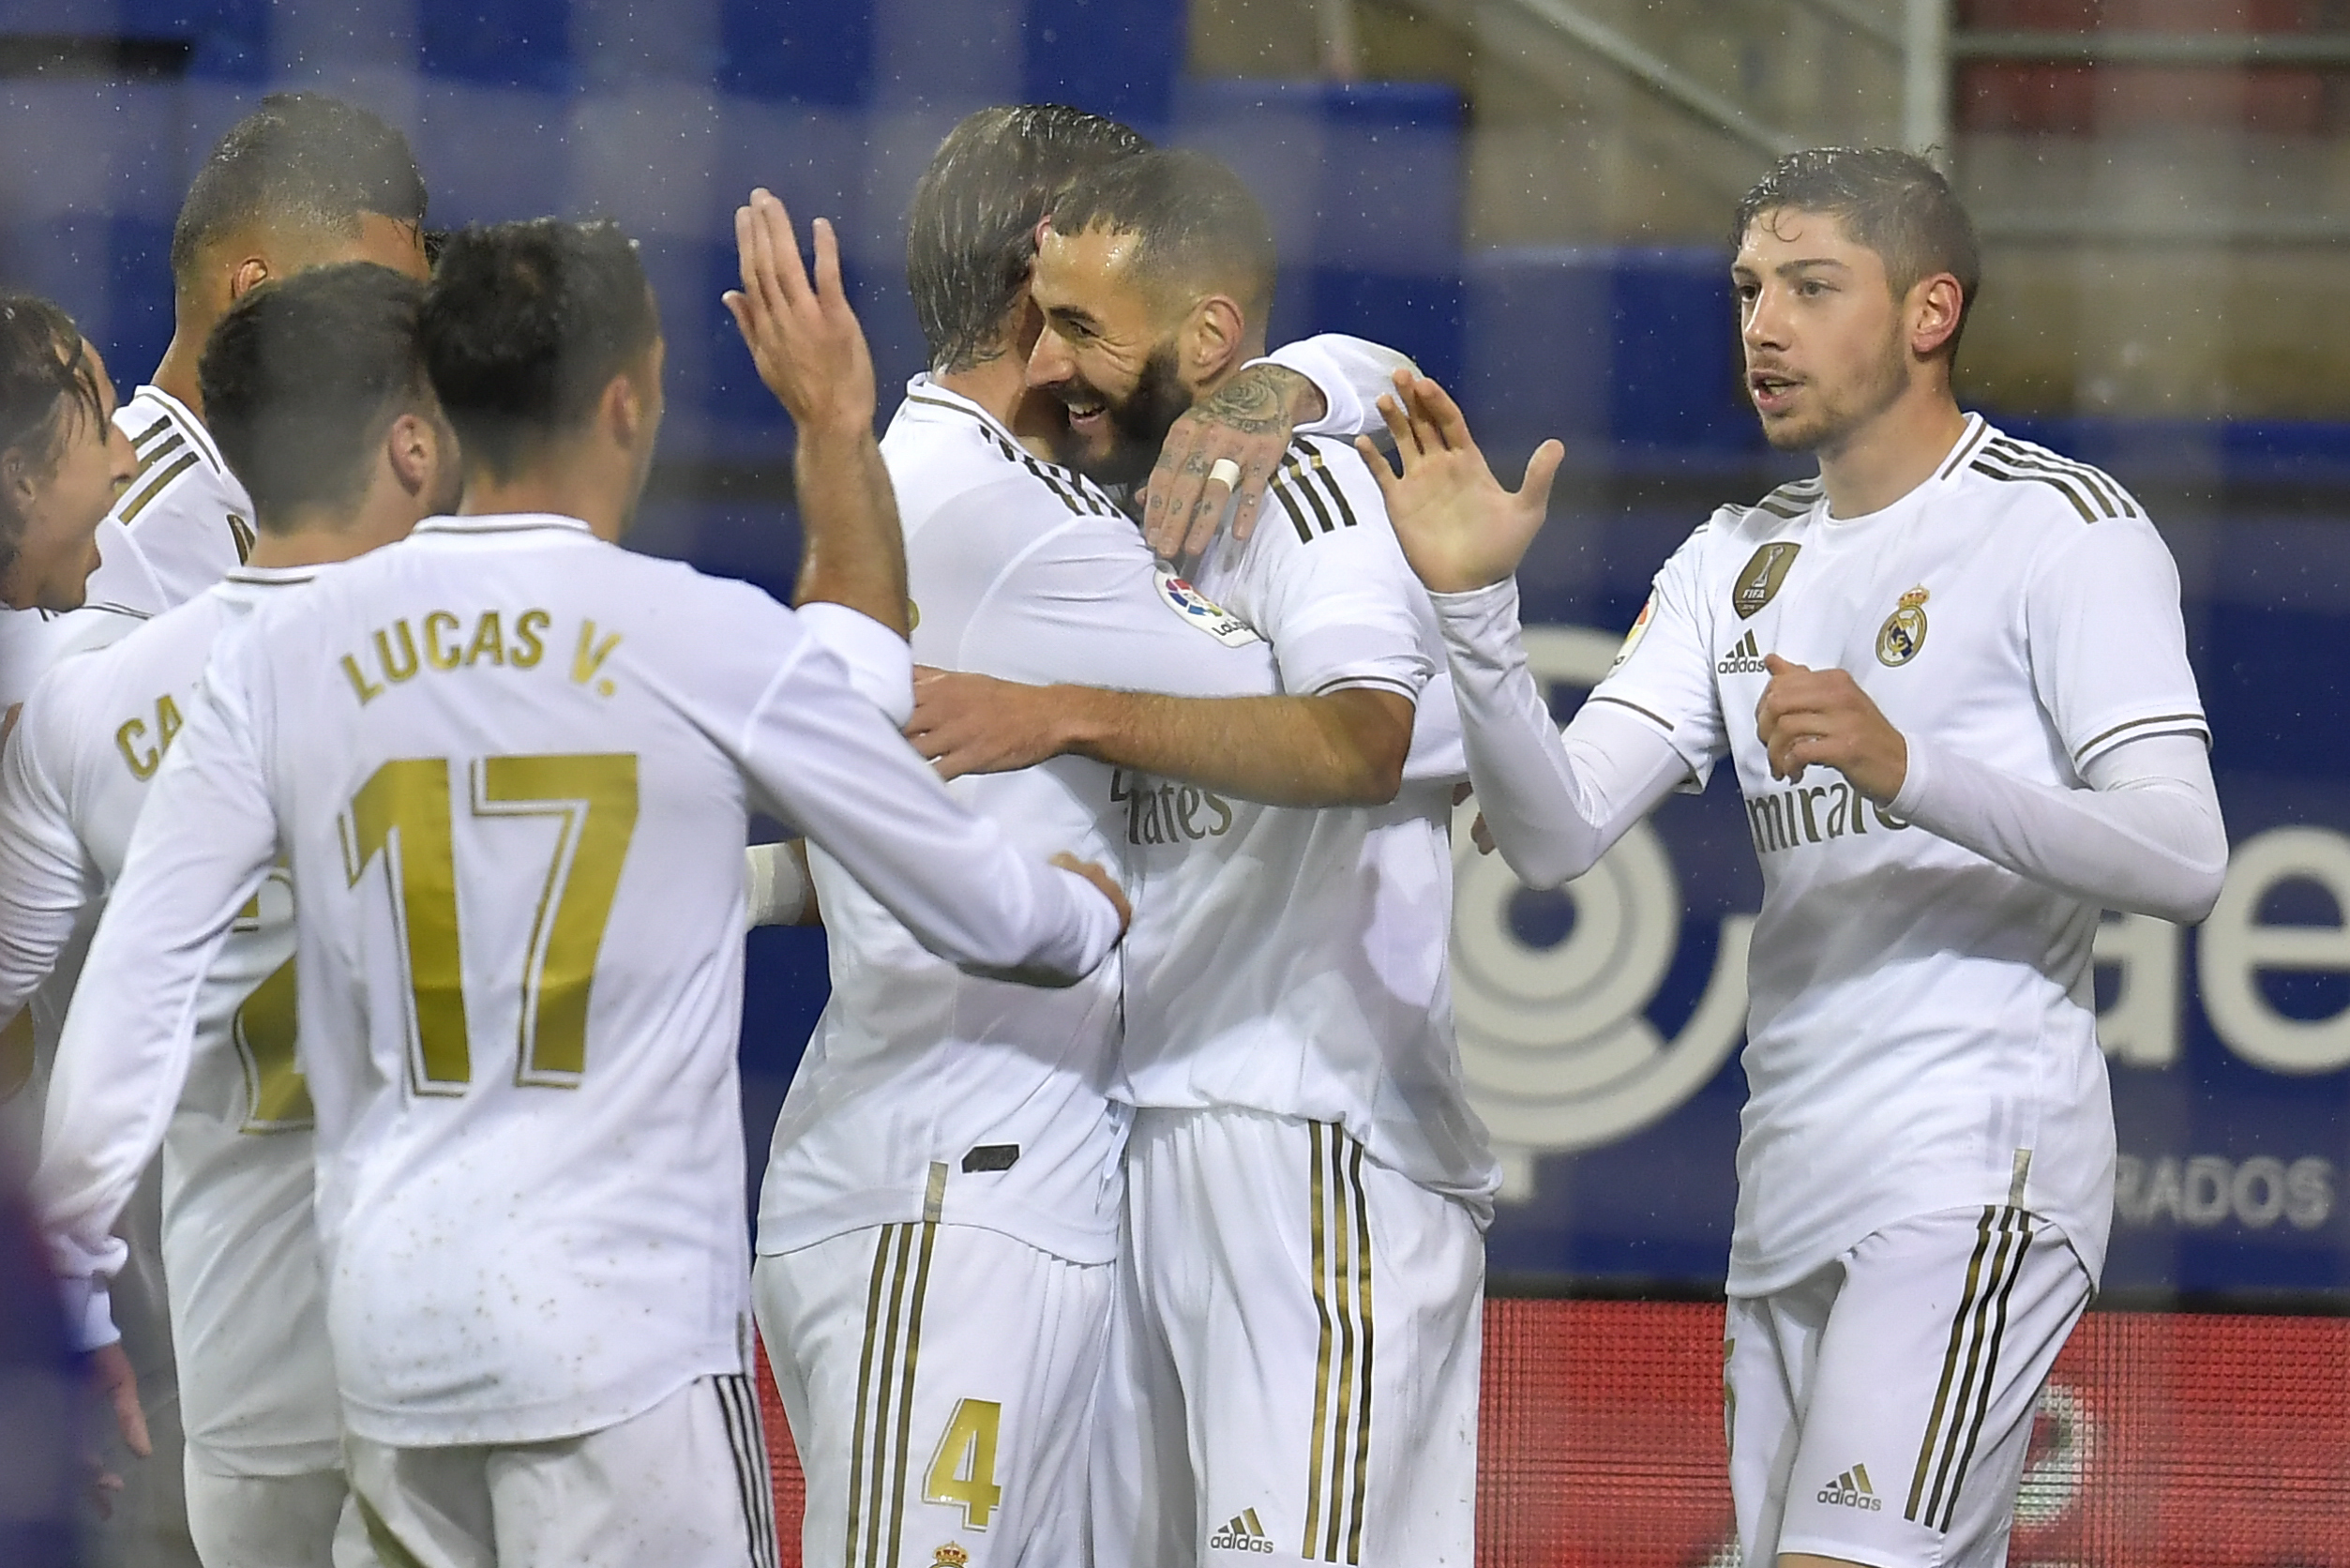 Alaves Vs Real Madrid Odds Live Stream Tv Schedule And Preview Bleacher Report Latest News Videos And Highlights